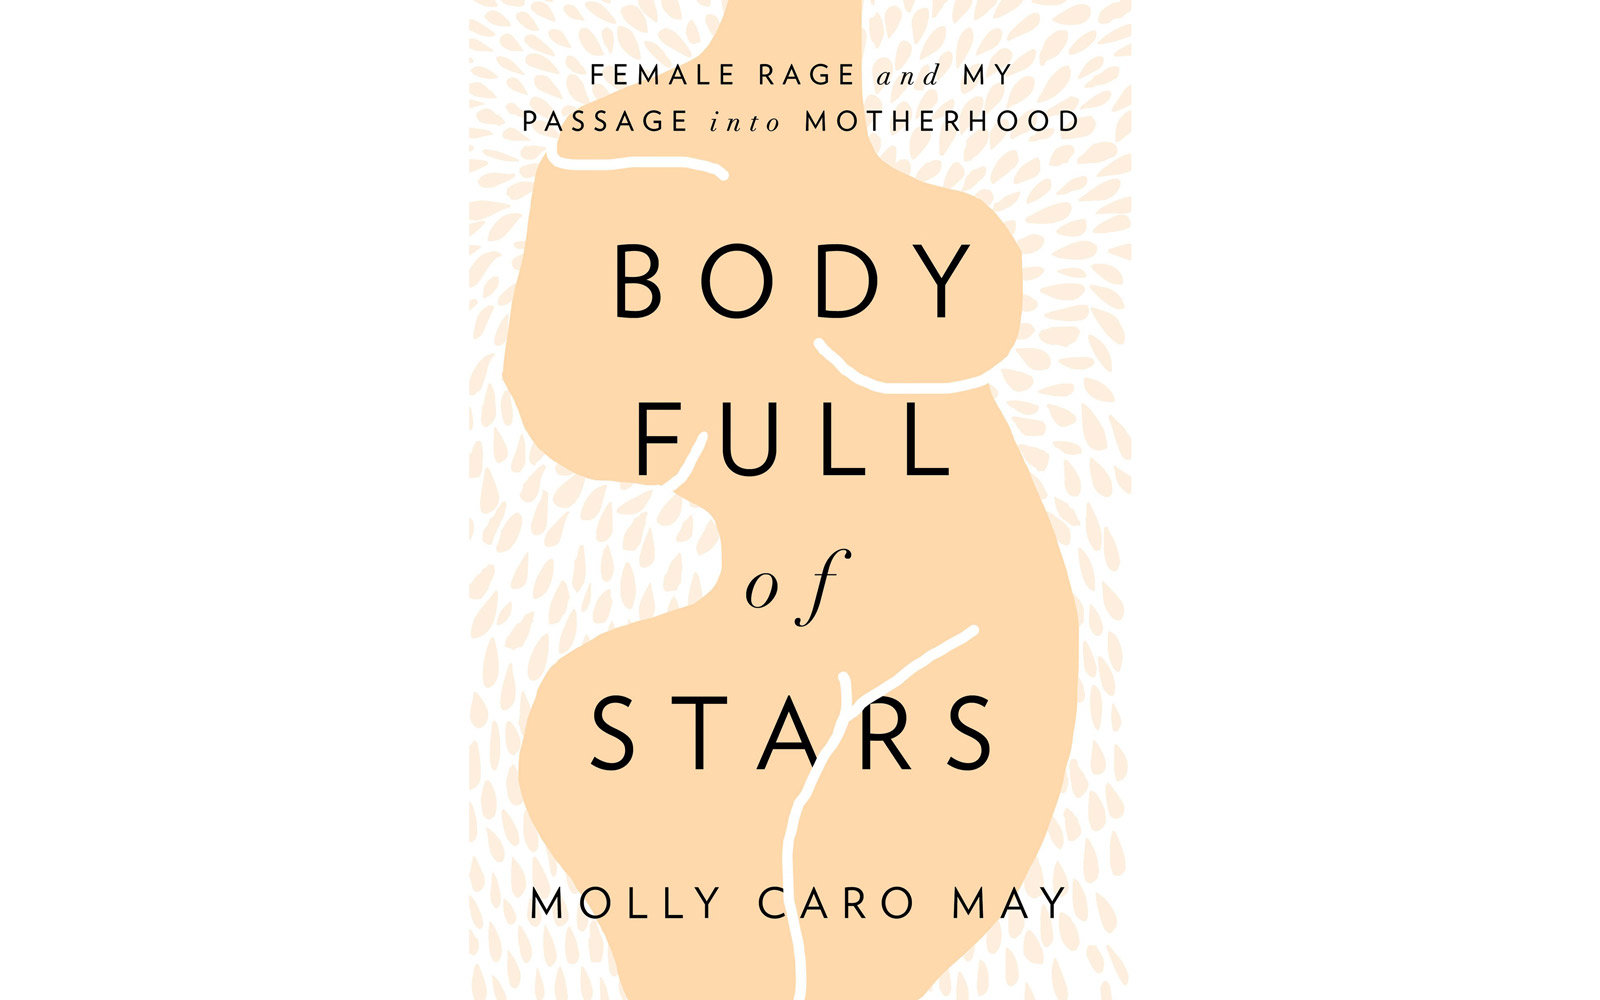 'Body Full of Stars' by Molly Caro May